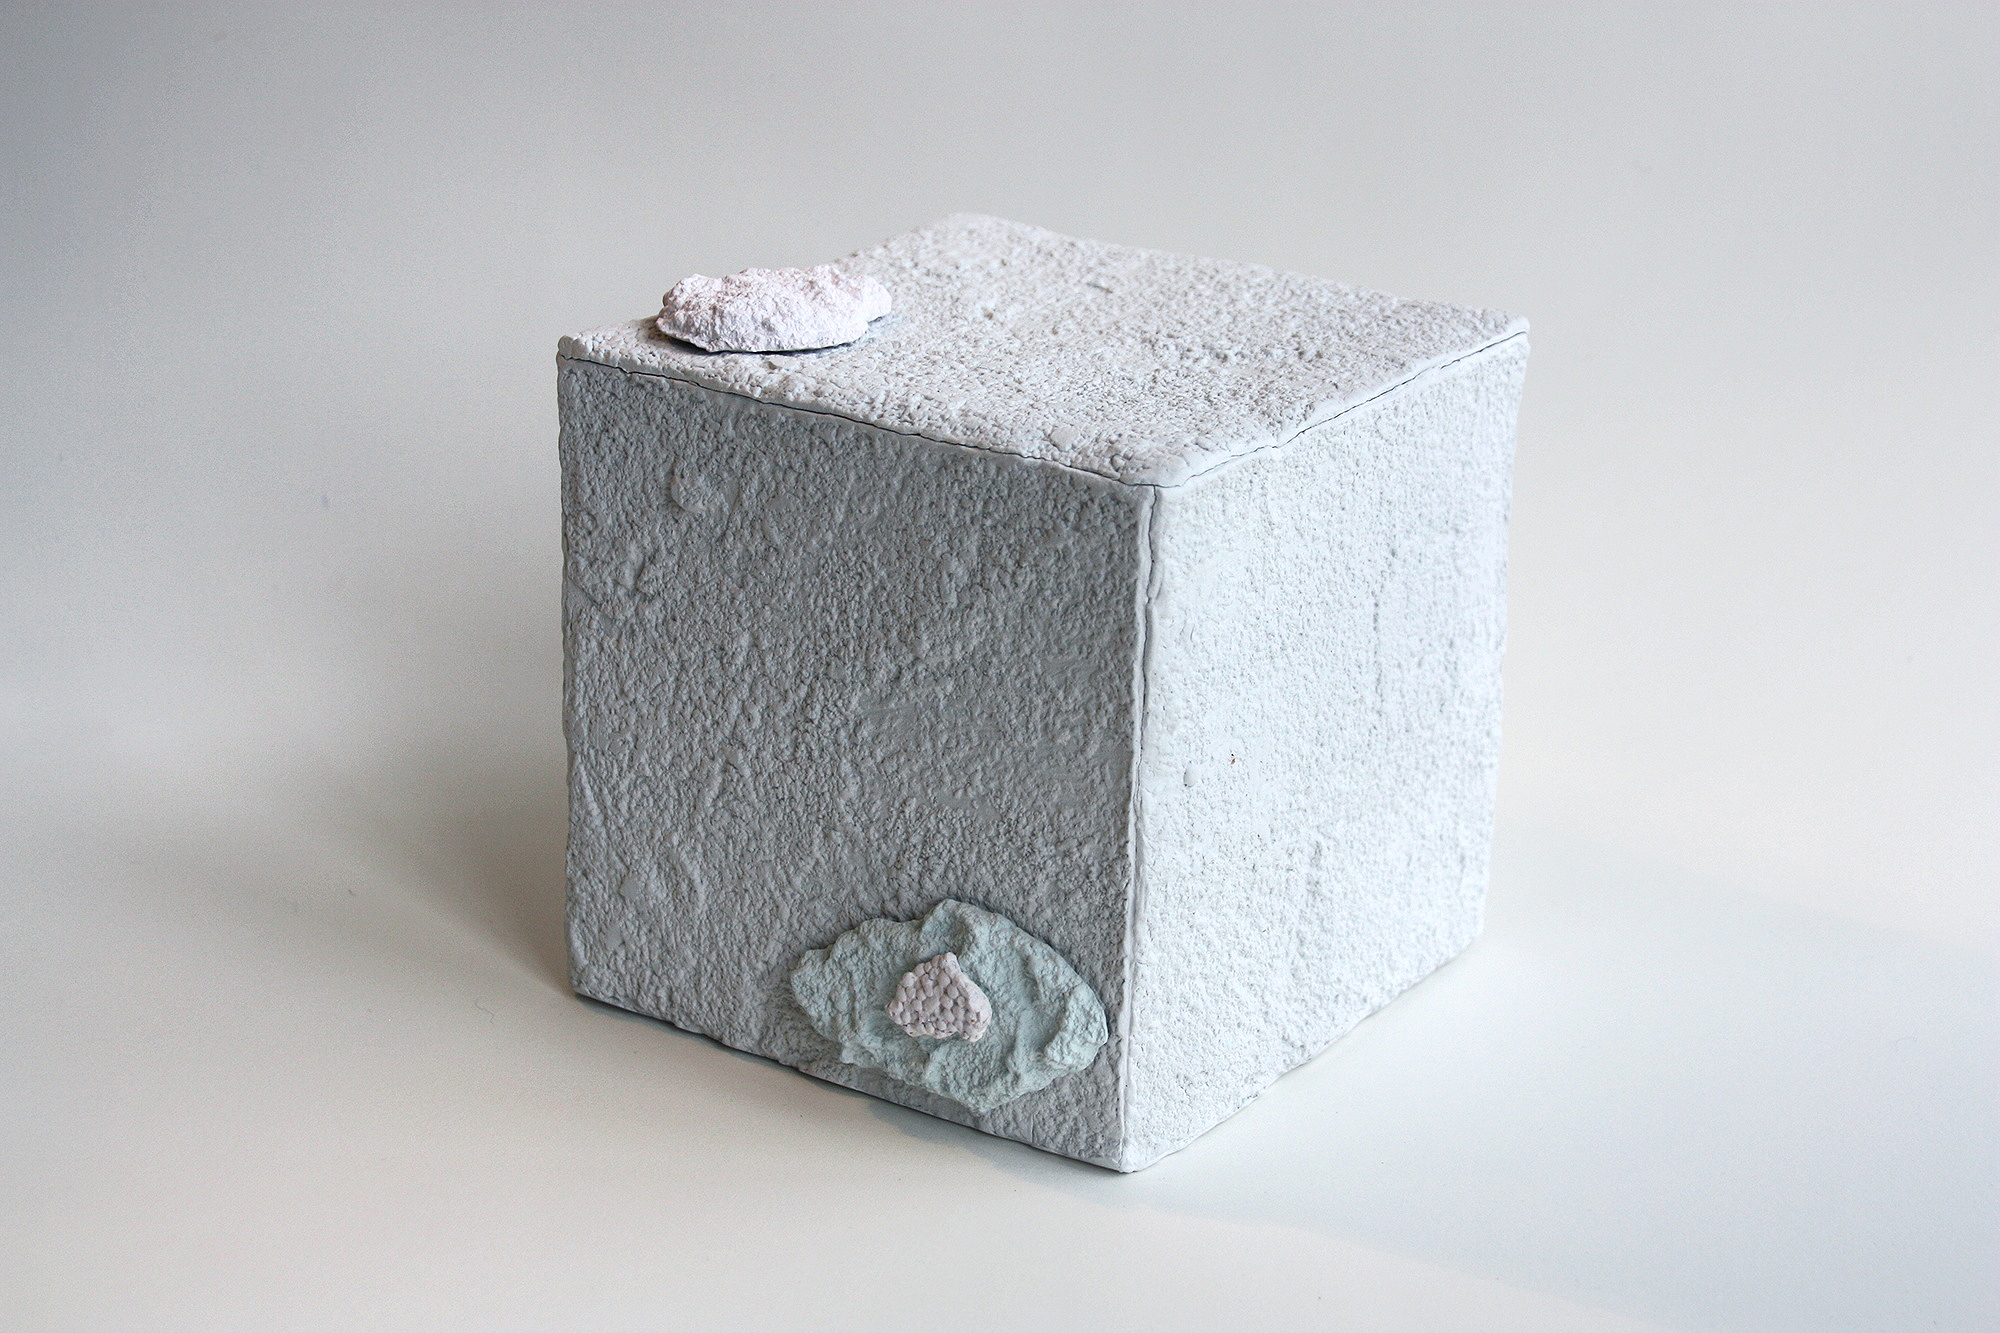 Madeleine Thornton-Smith,  Concrete Pedestal , earthenware, stain, 13.5 x 14.5 x 15 cm, Image courtesy the artist.